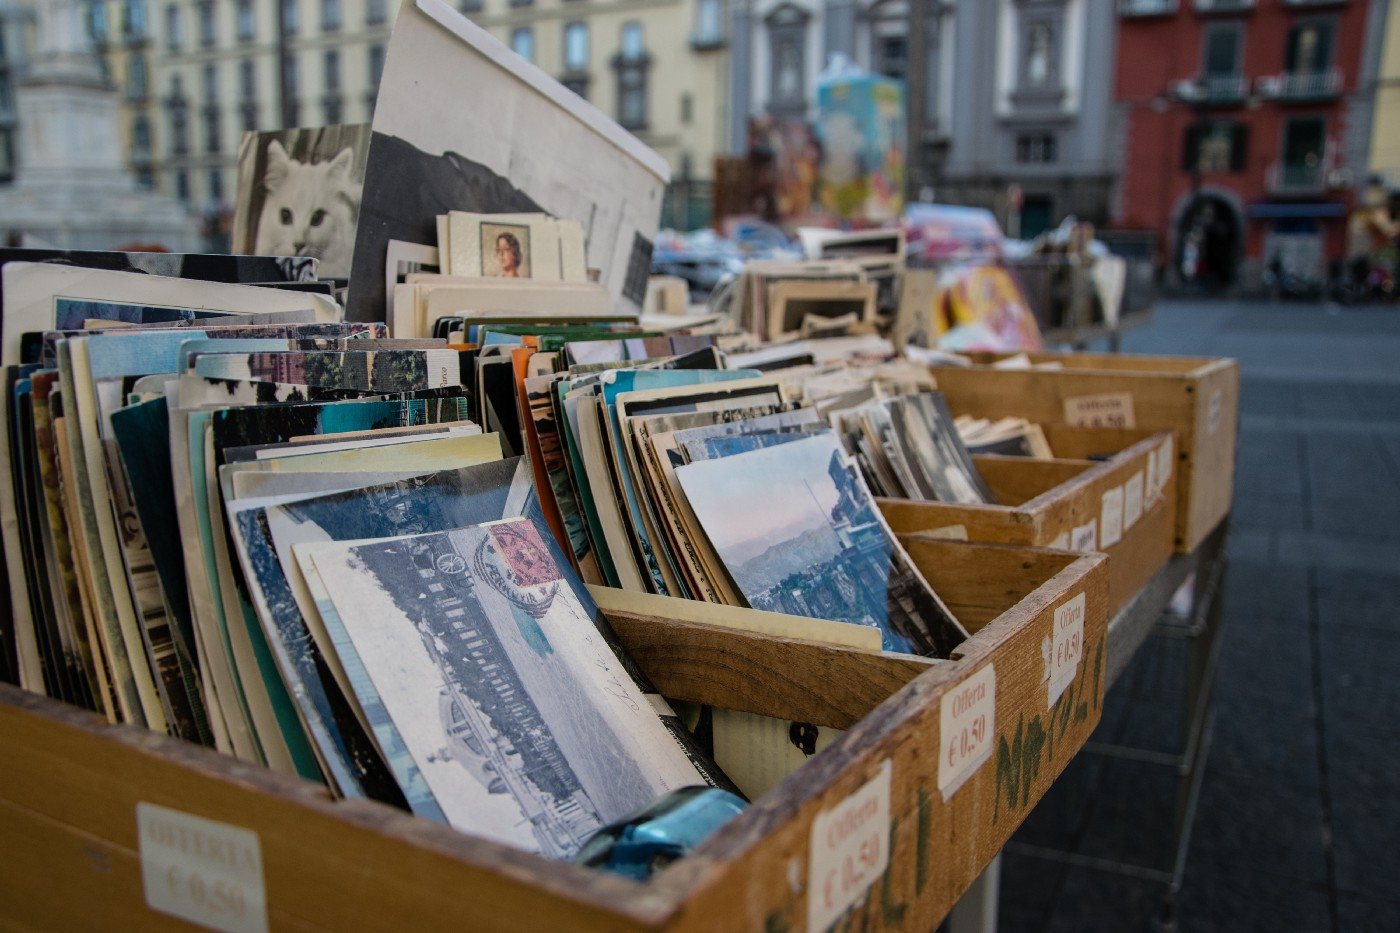 Vinyl records on a street cart